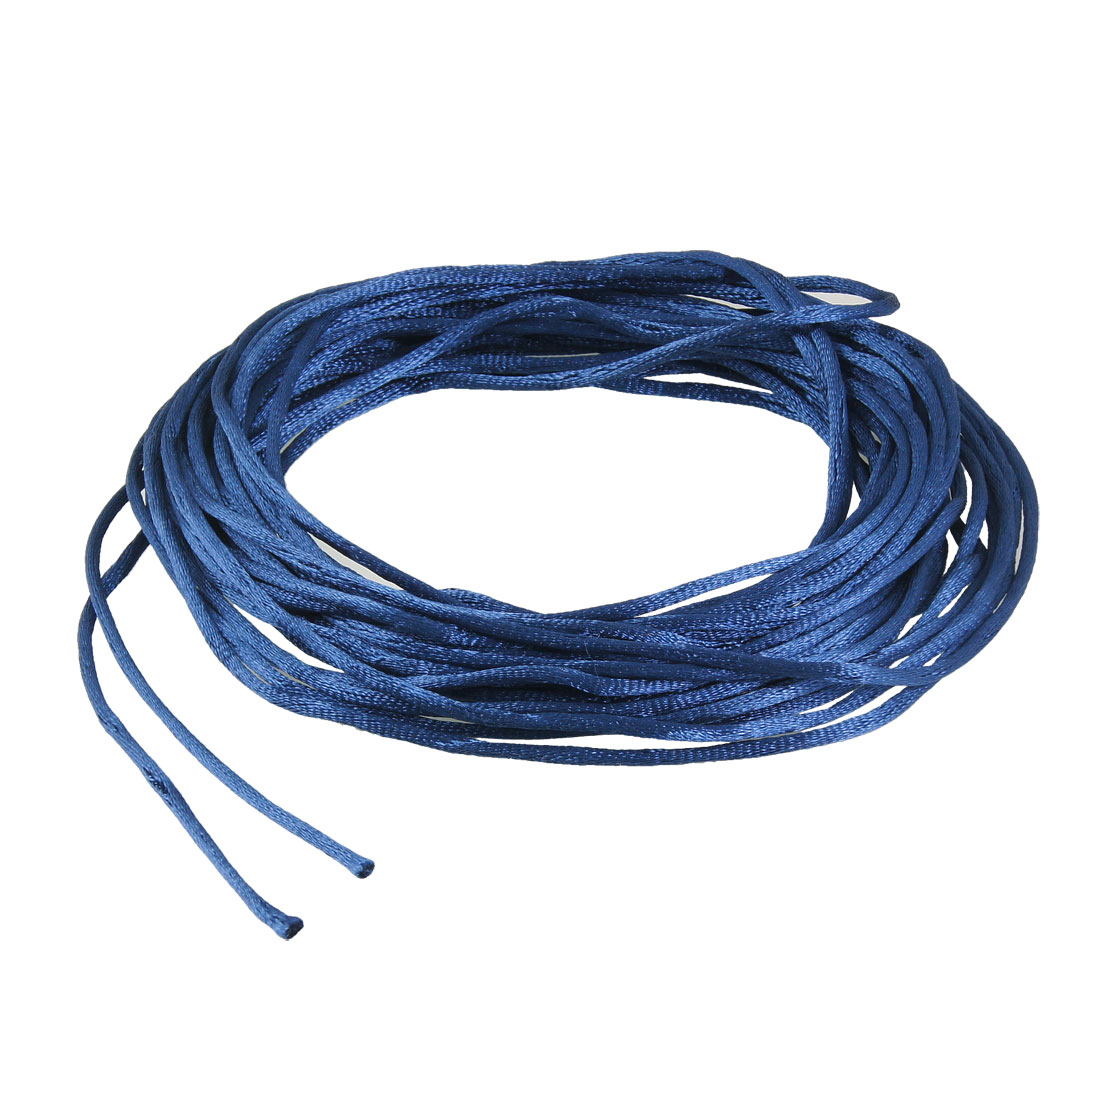 Royal Blue Braided Thread Nylon Handwork Chinese Knot Rat Tail Cord